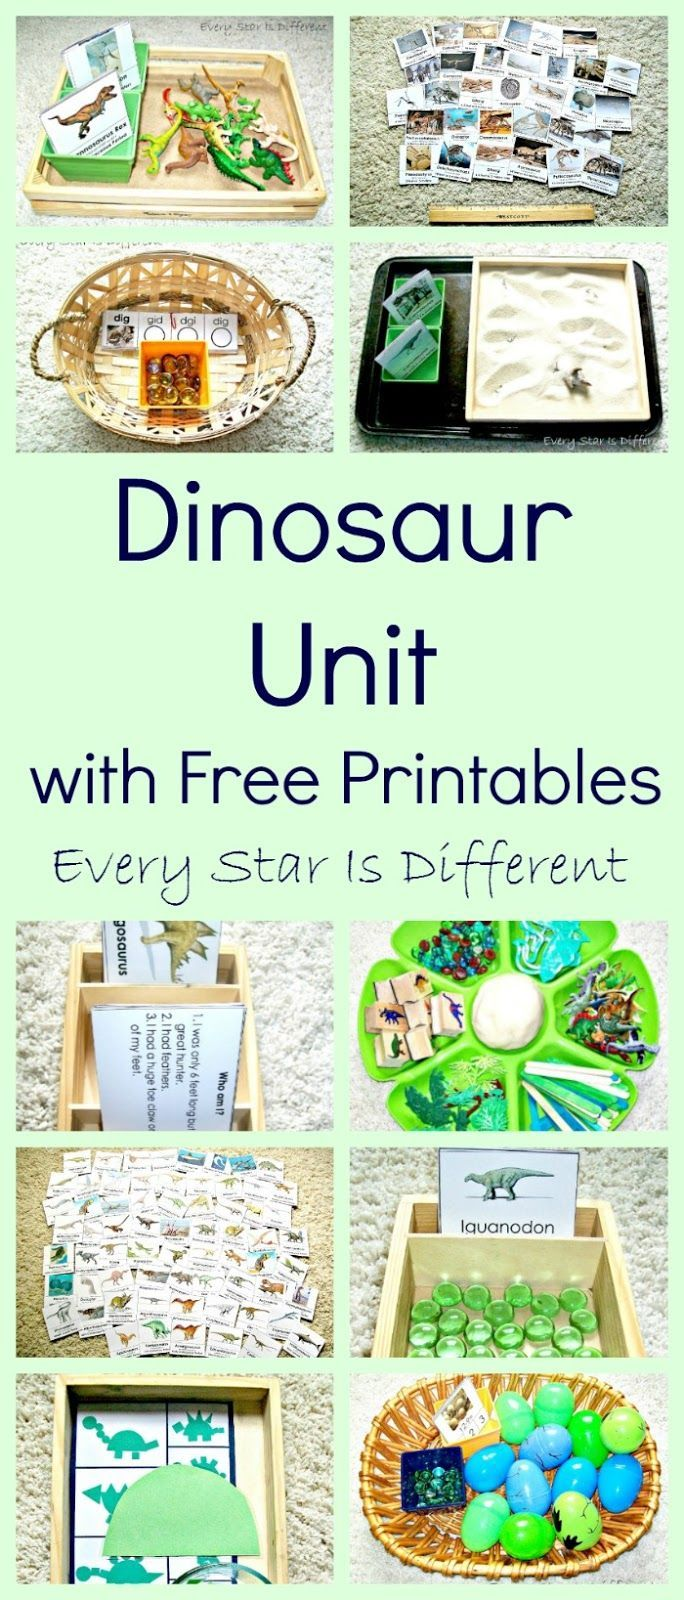 84 best Dinosaurs images on Pinterest | Dinosaurs, Day care and ...